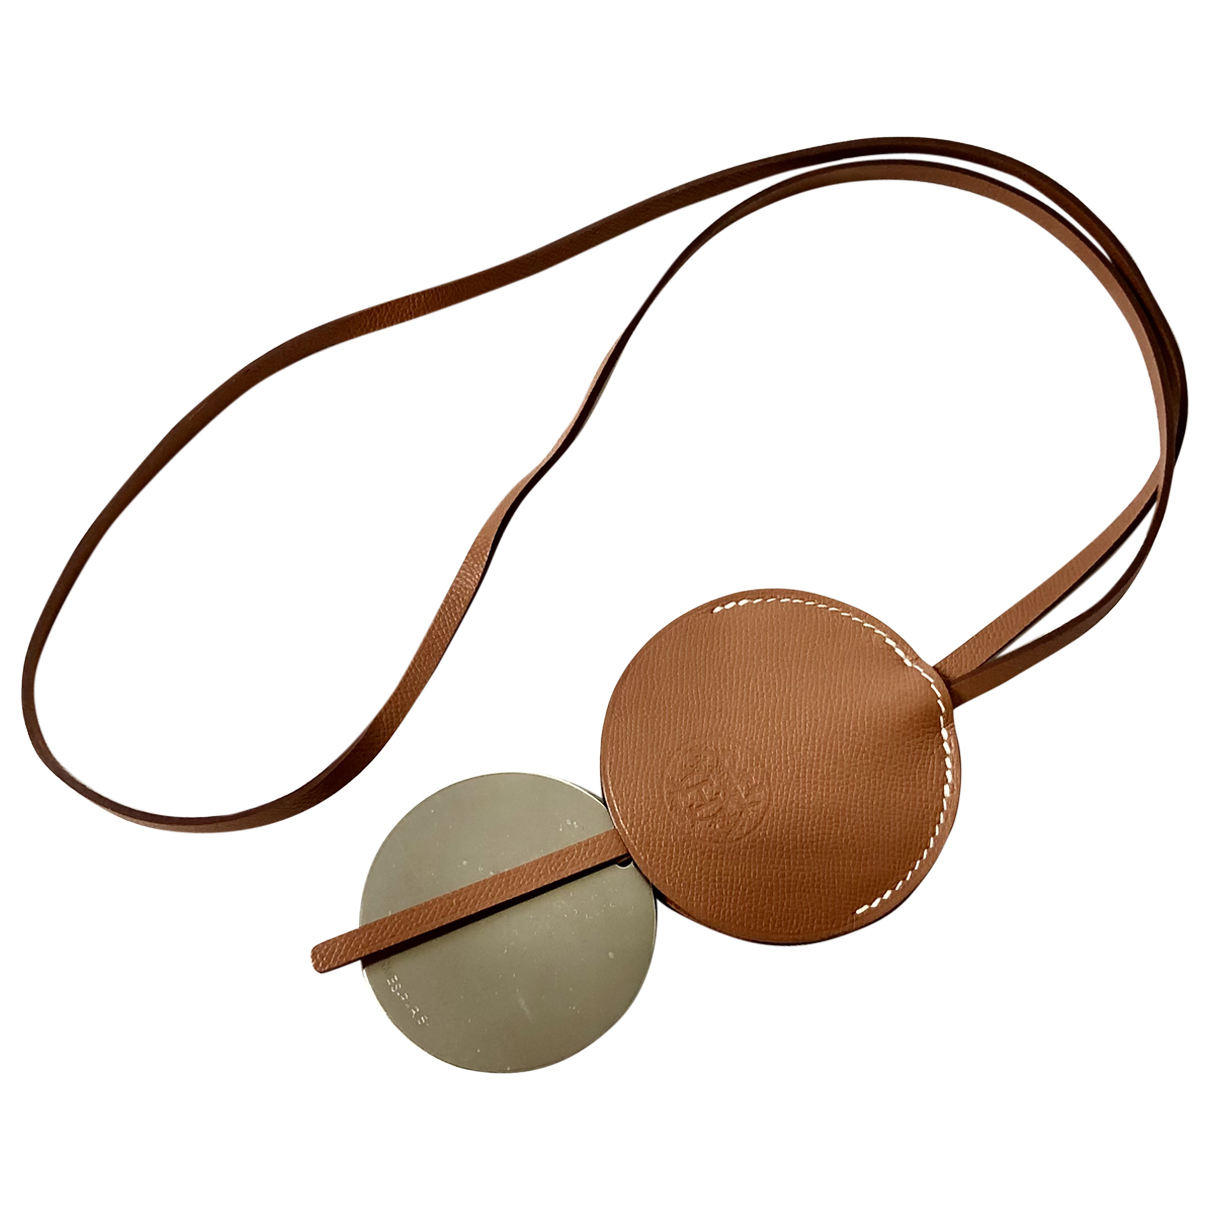 Hermès N Camel Leather necklace for Women N